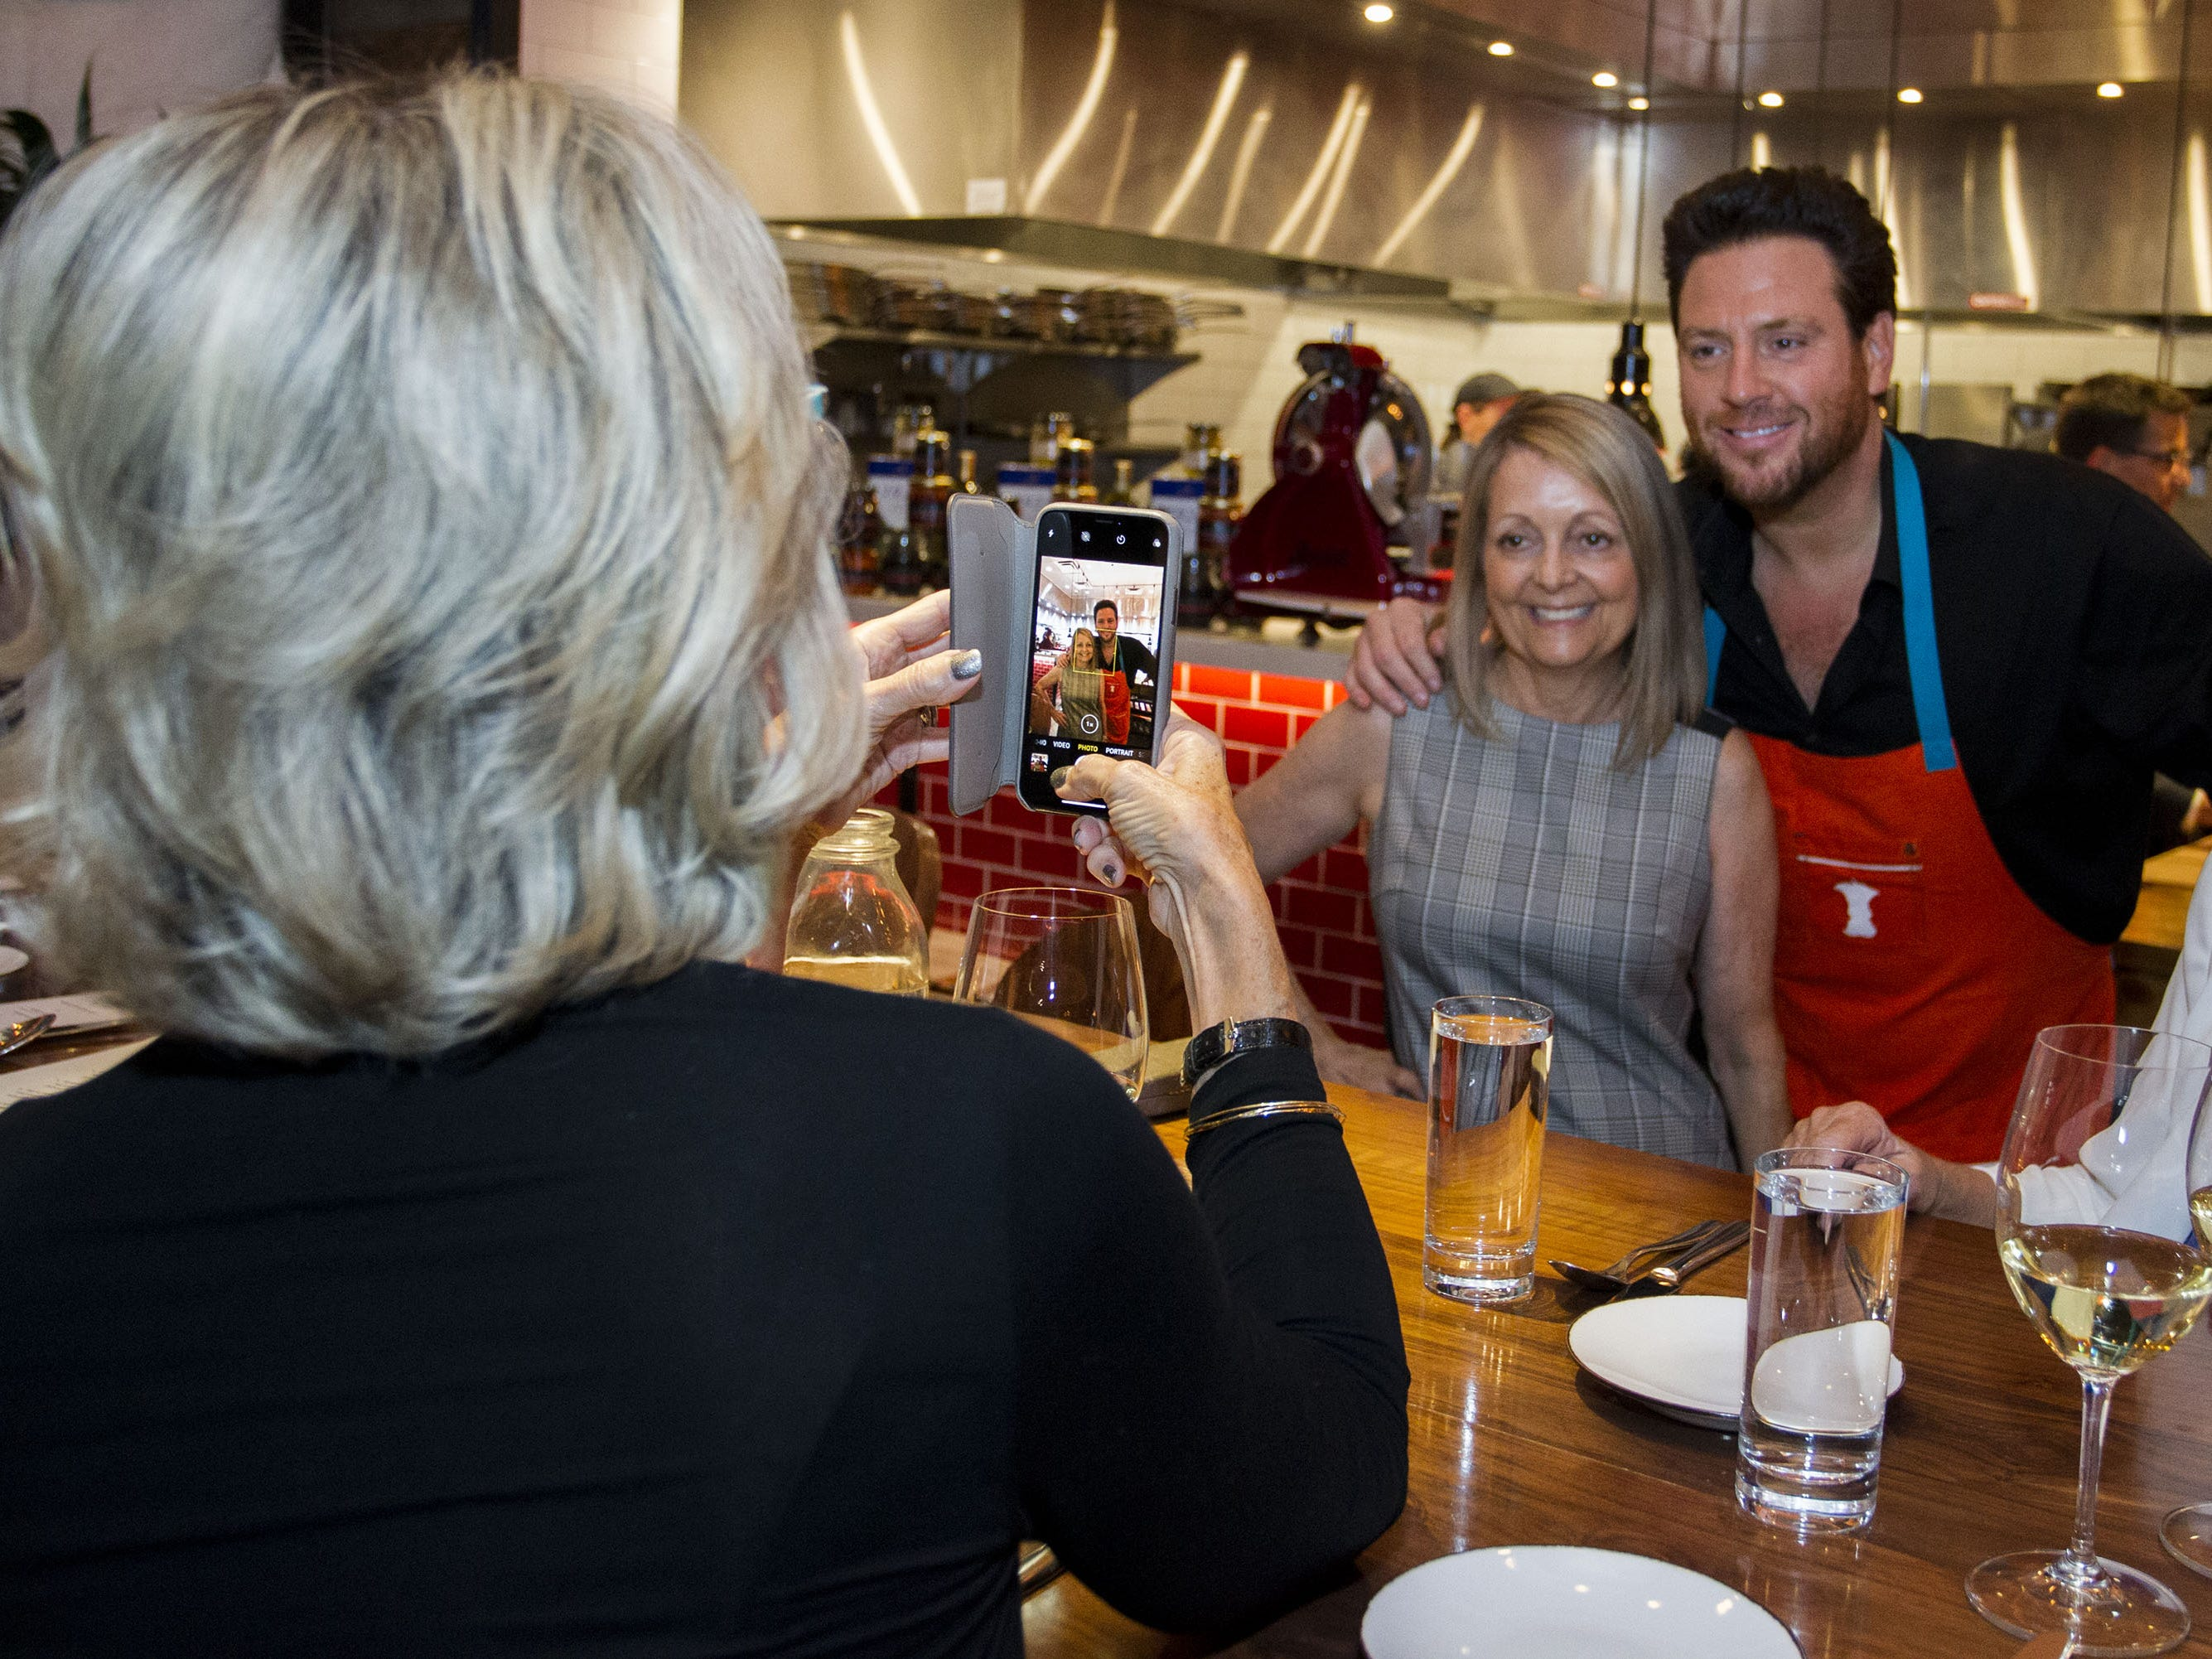 Chef Scott Conant poses with Ronna Glick during the exclusive kickoff dining event at Mora Italian for azcentral Wine & Food Experience.